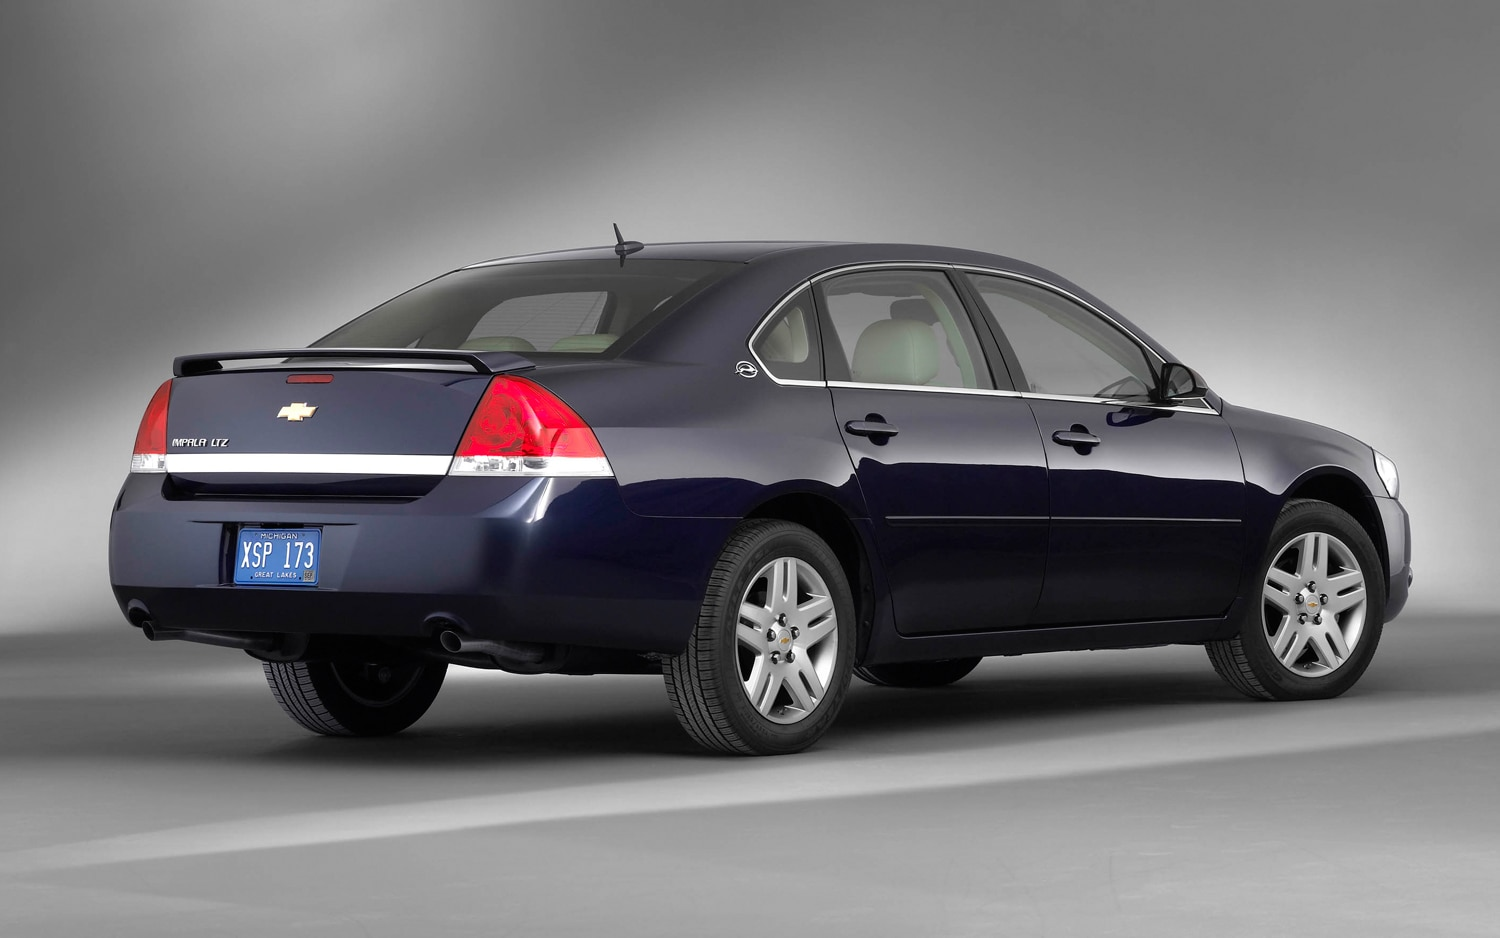 2007 Chevrolet Impala Ltz Rear Three Quarter1